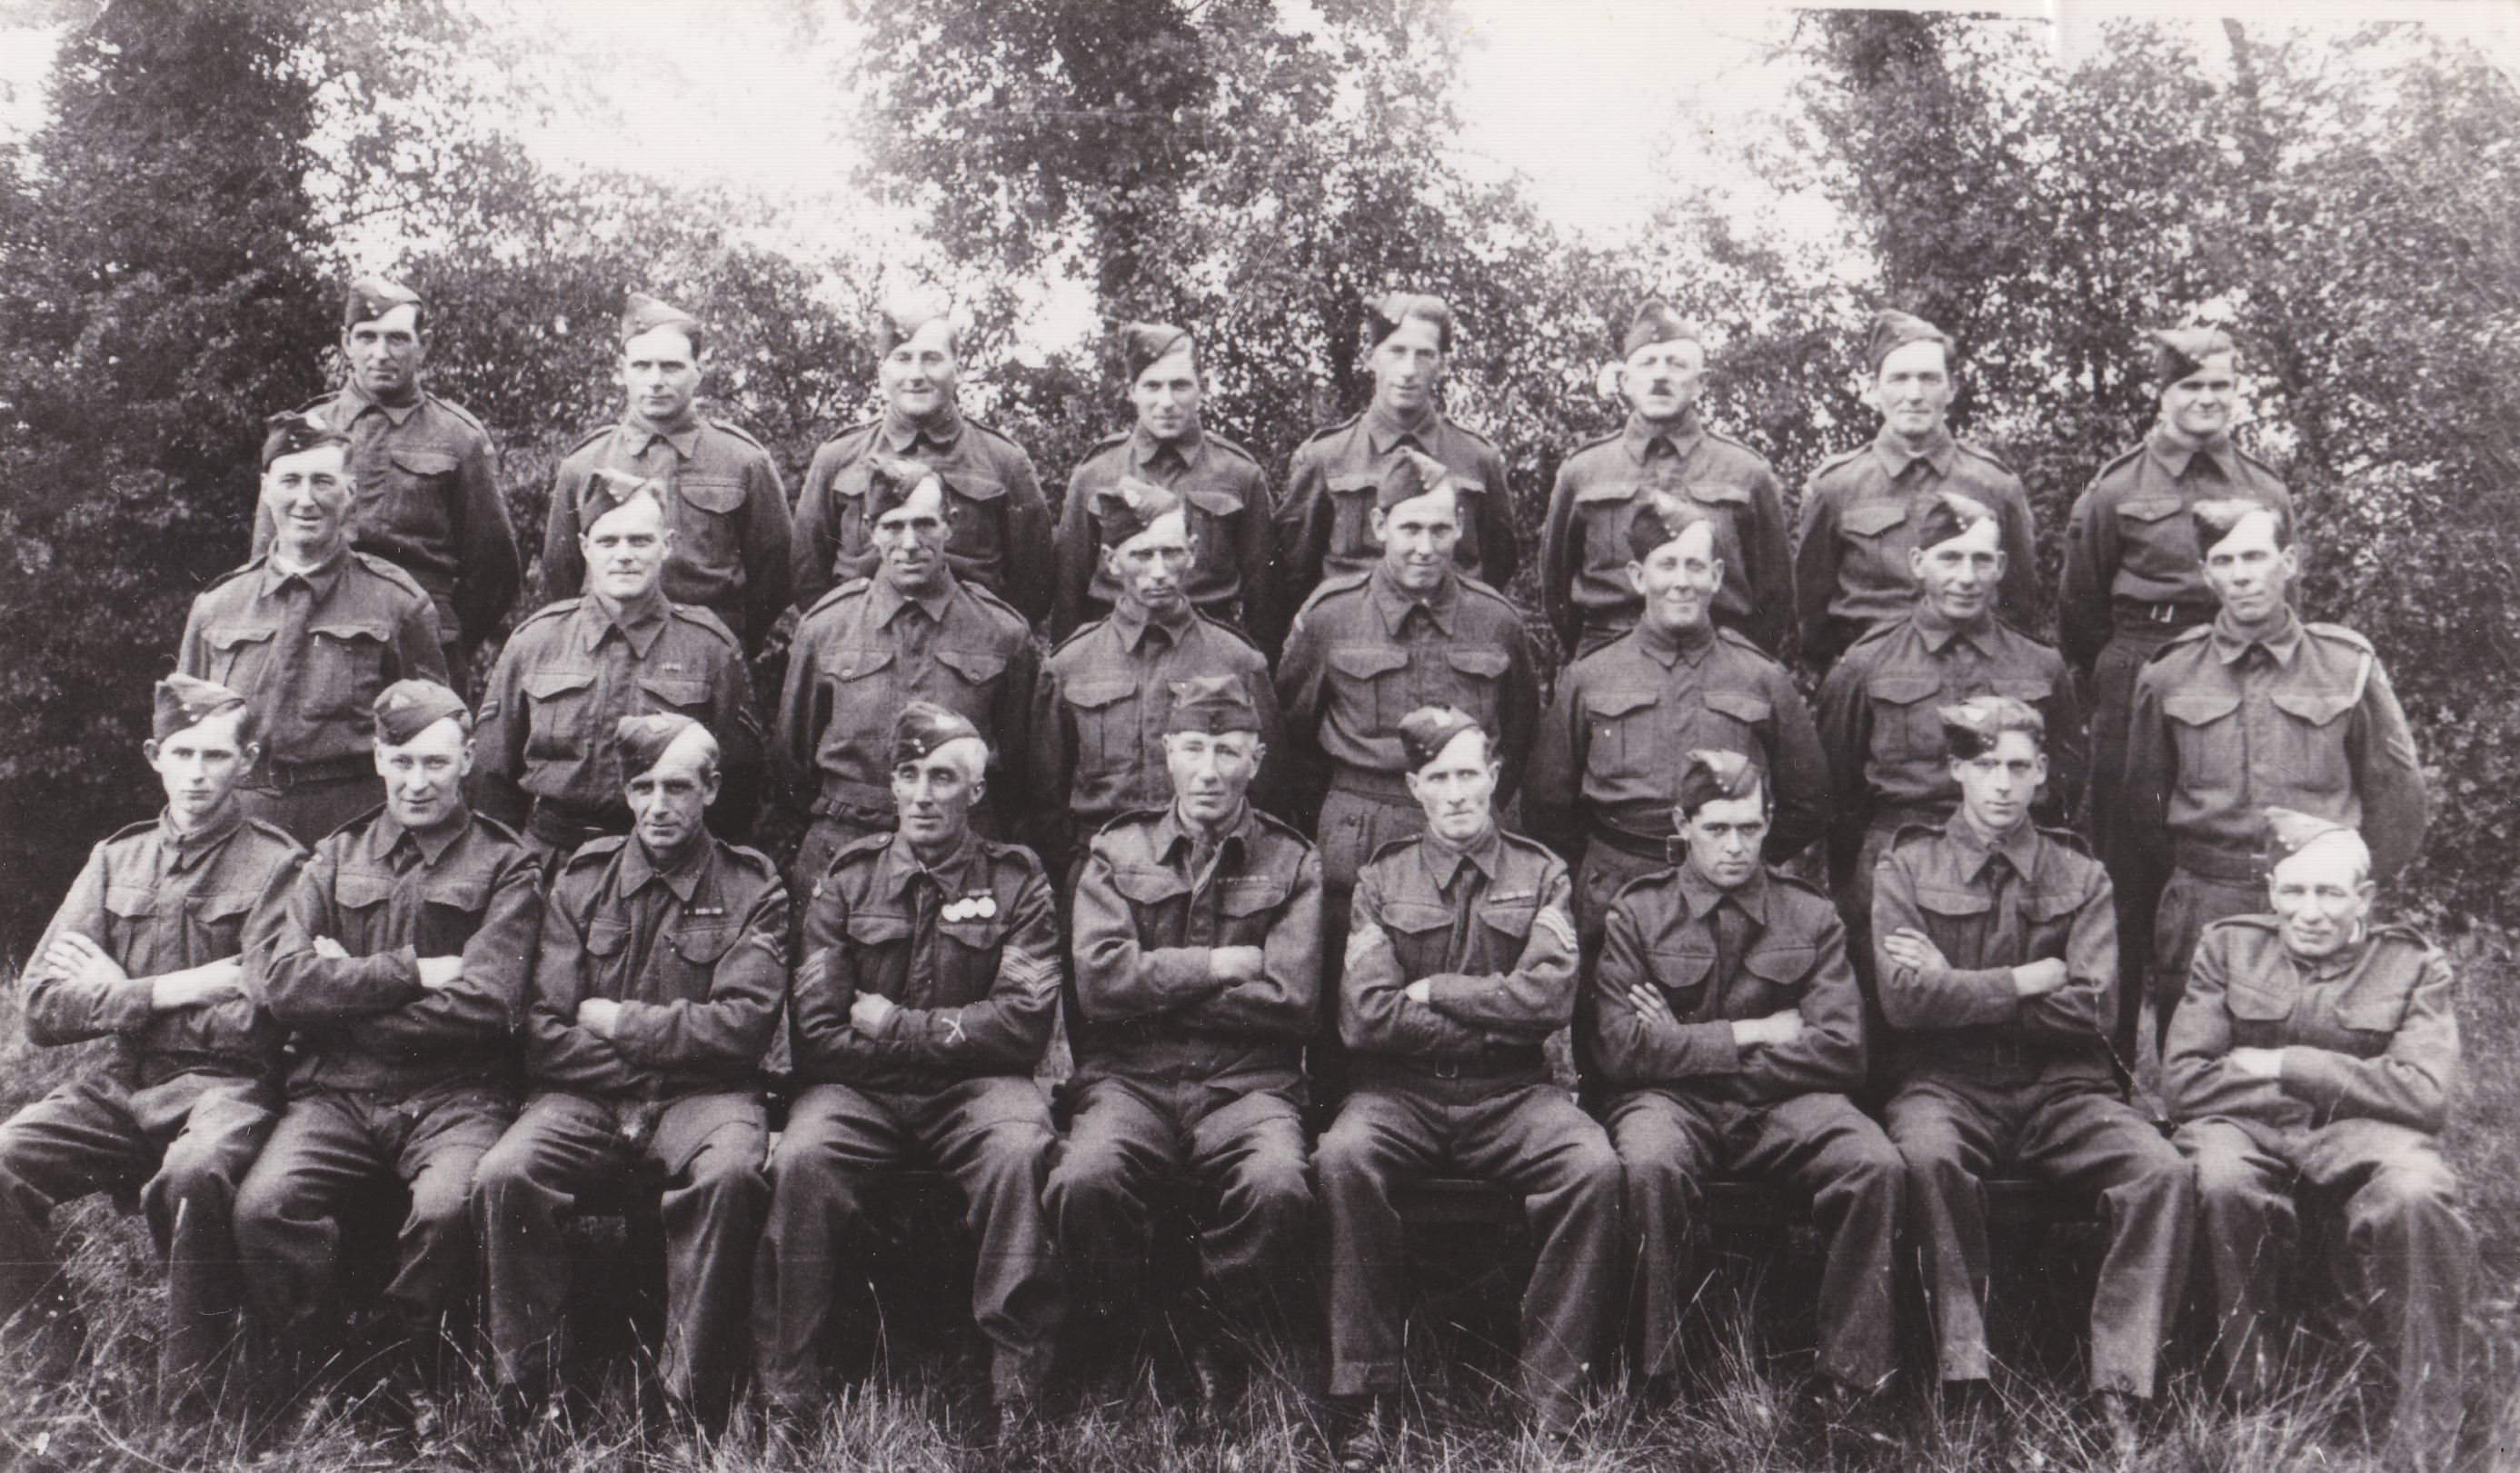 p821-001 all the men of Rumburgh home guard 1944